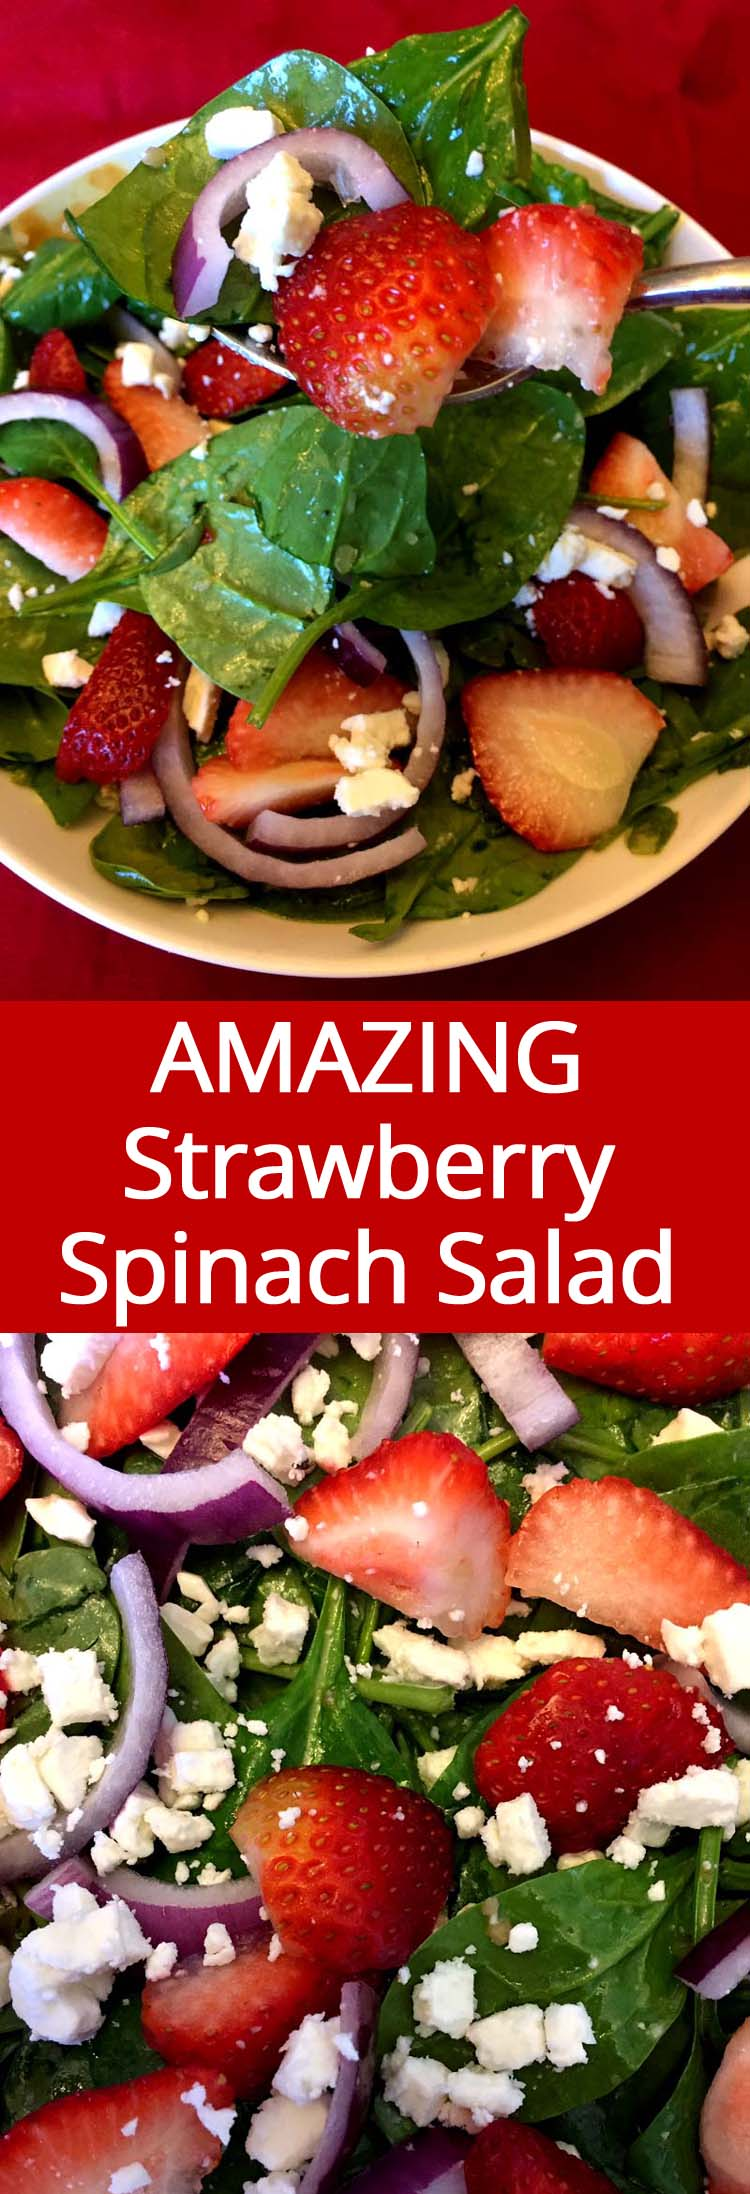 This strawberry spinach feta salad is amazing! So healthy, coloful and festive! I love this combo!